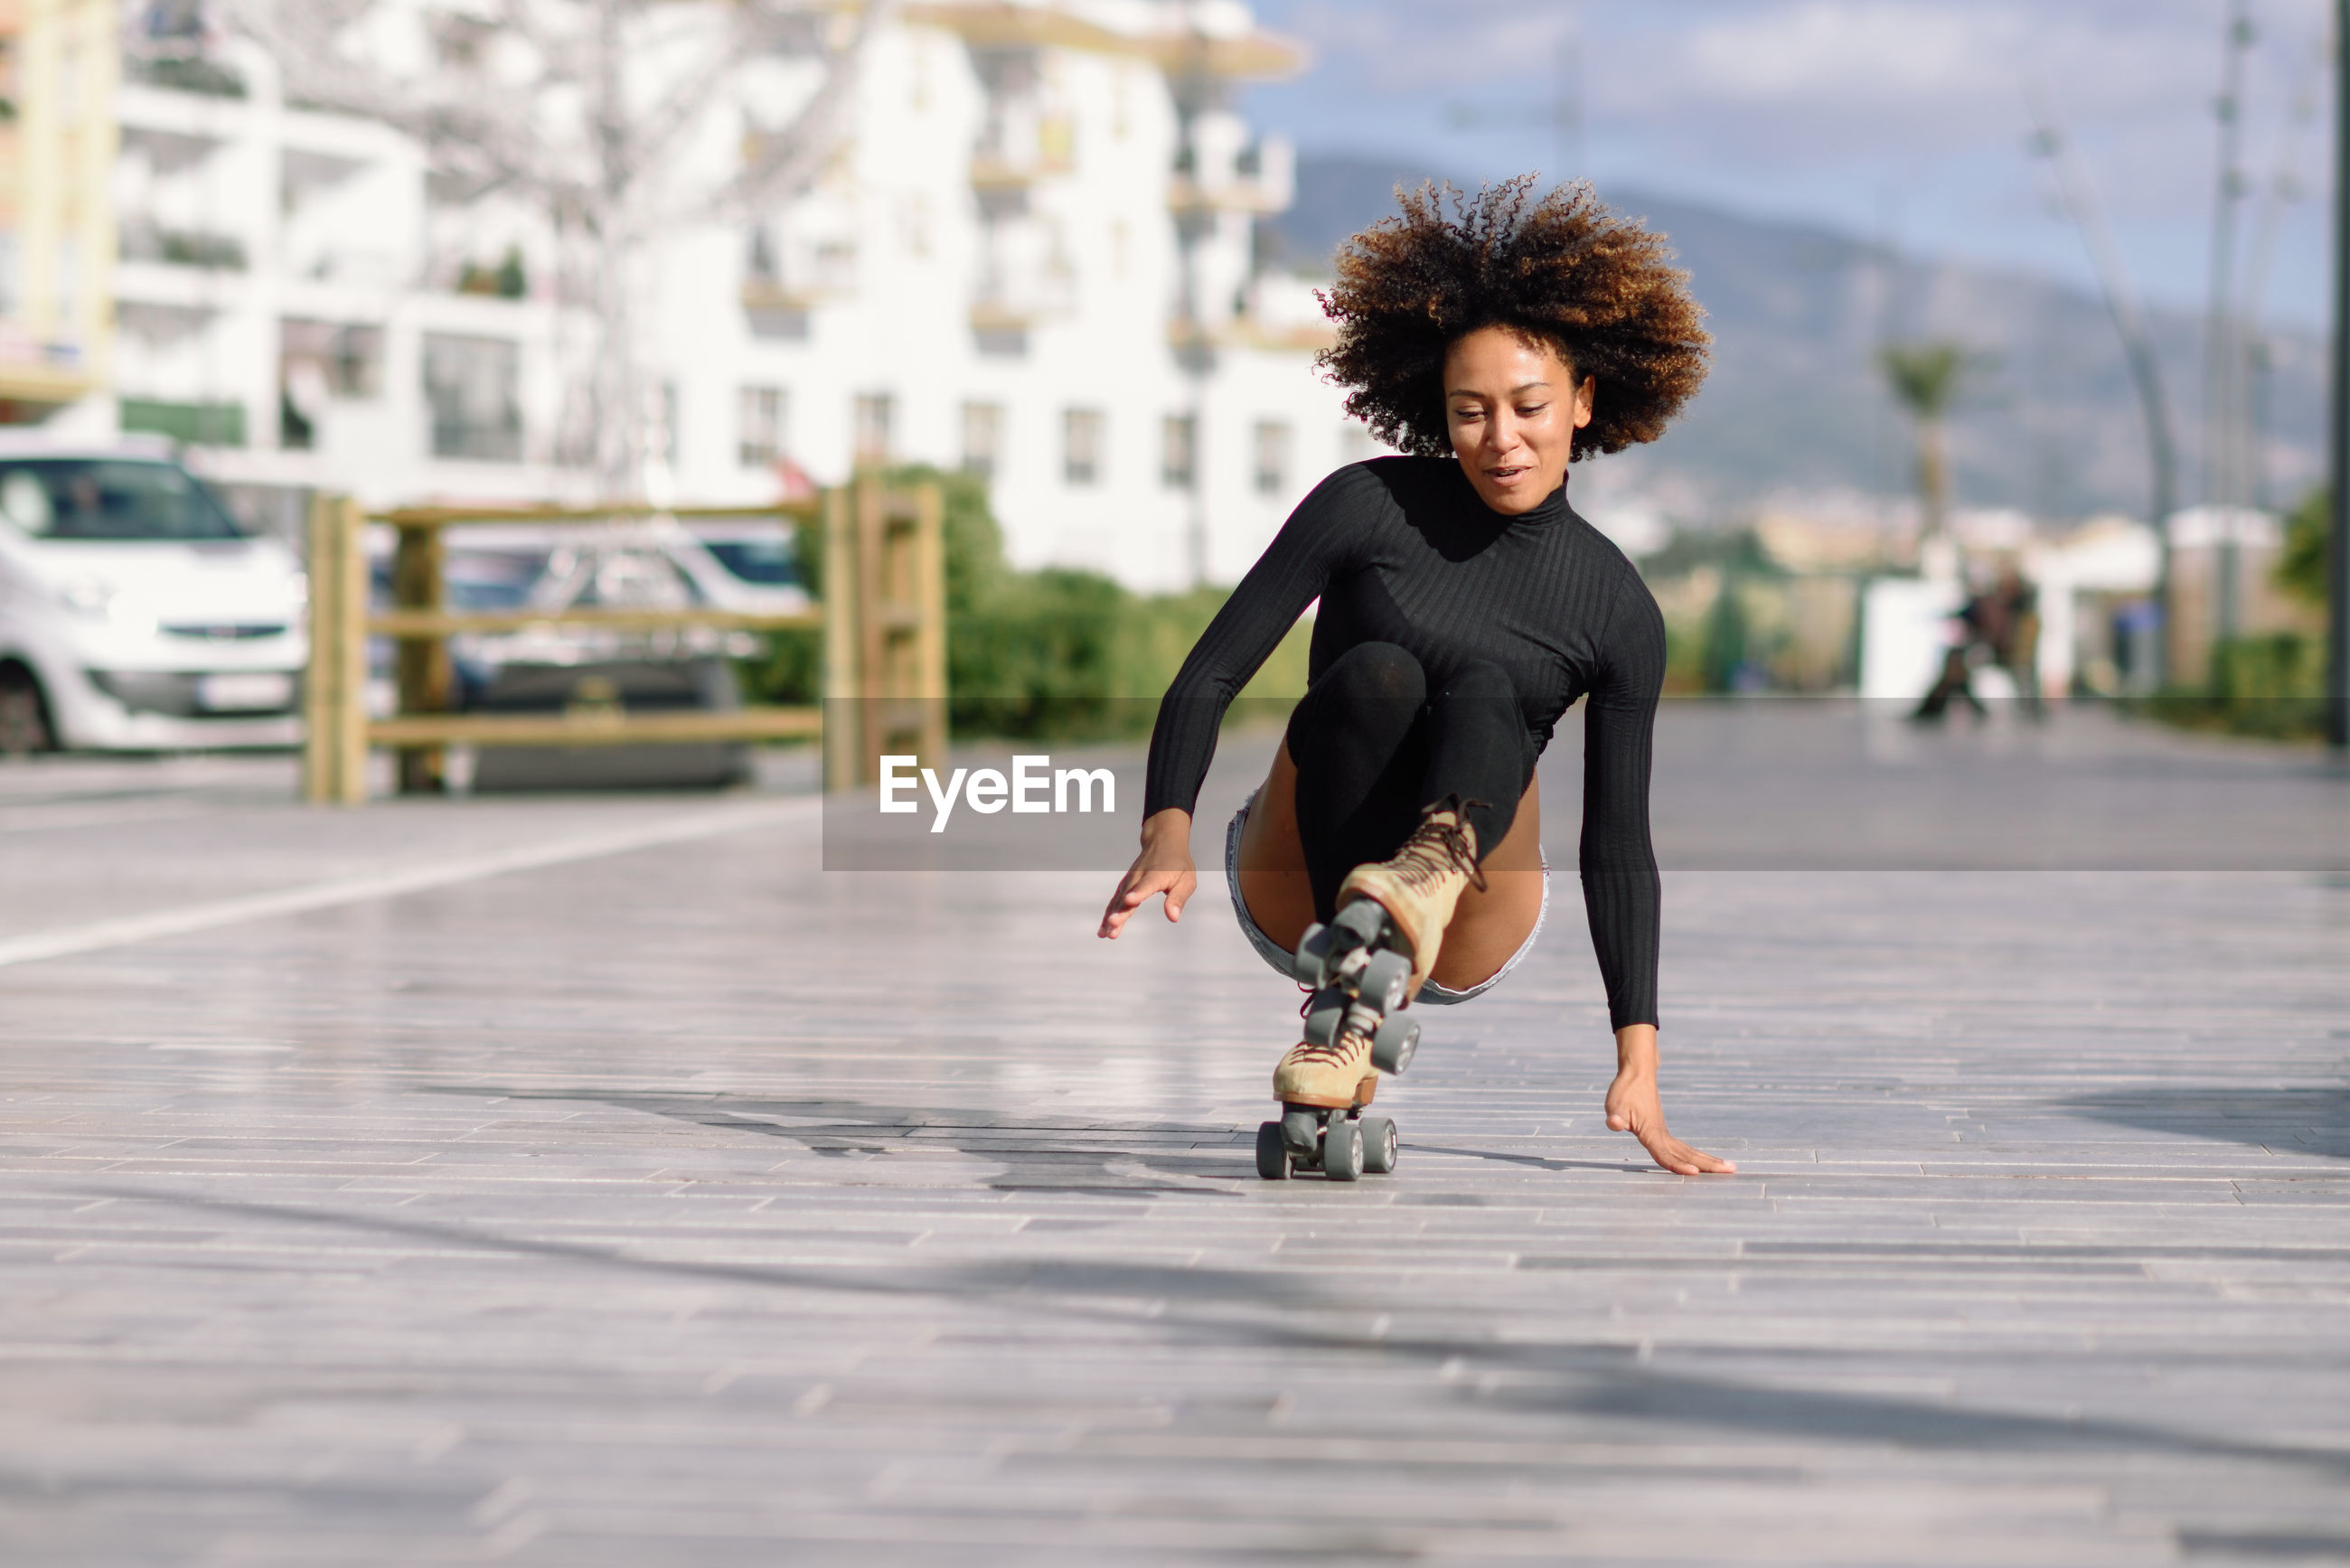 Young woman roller skating on sidewalk in city